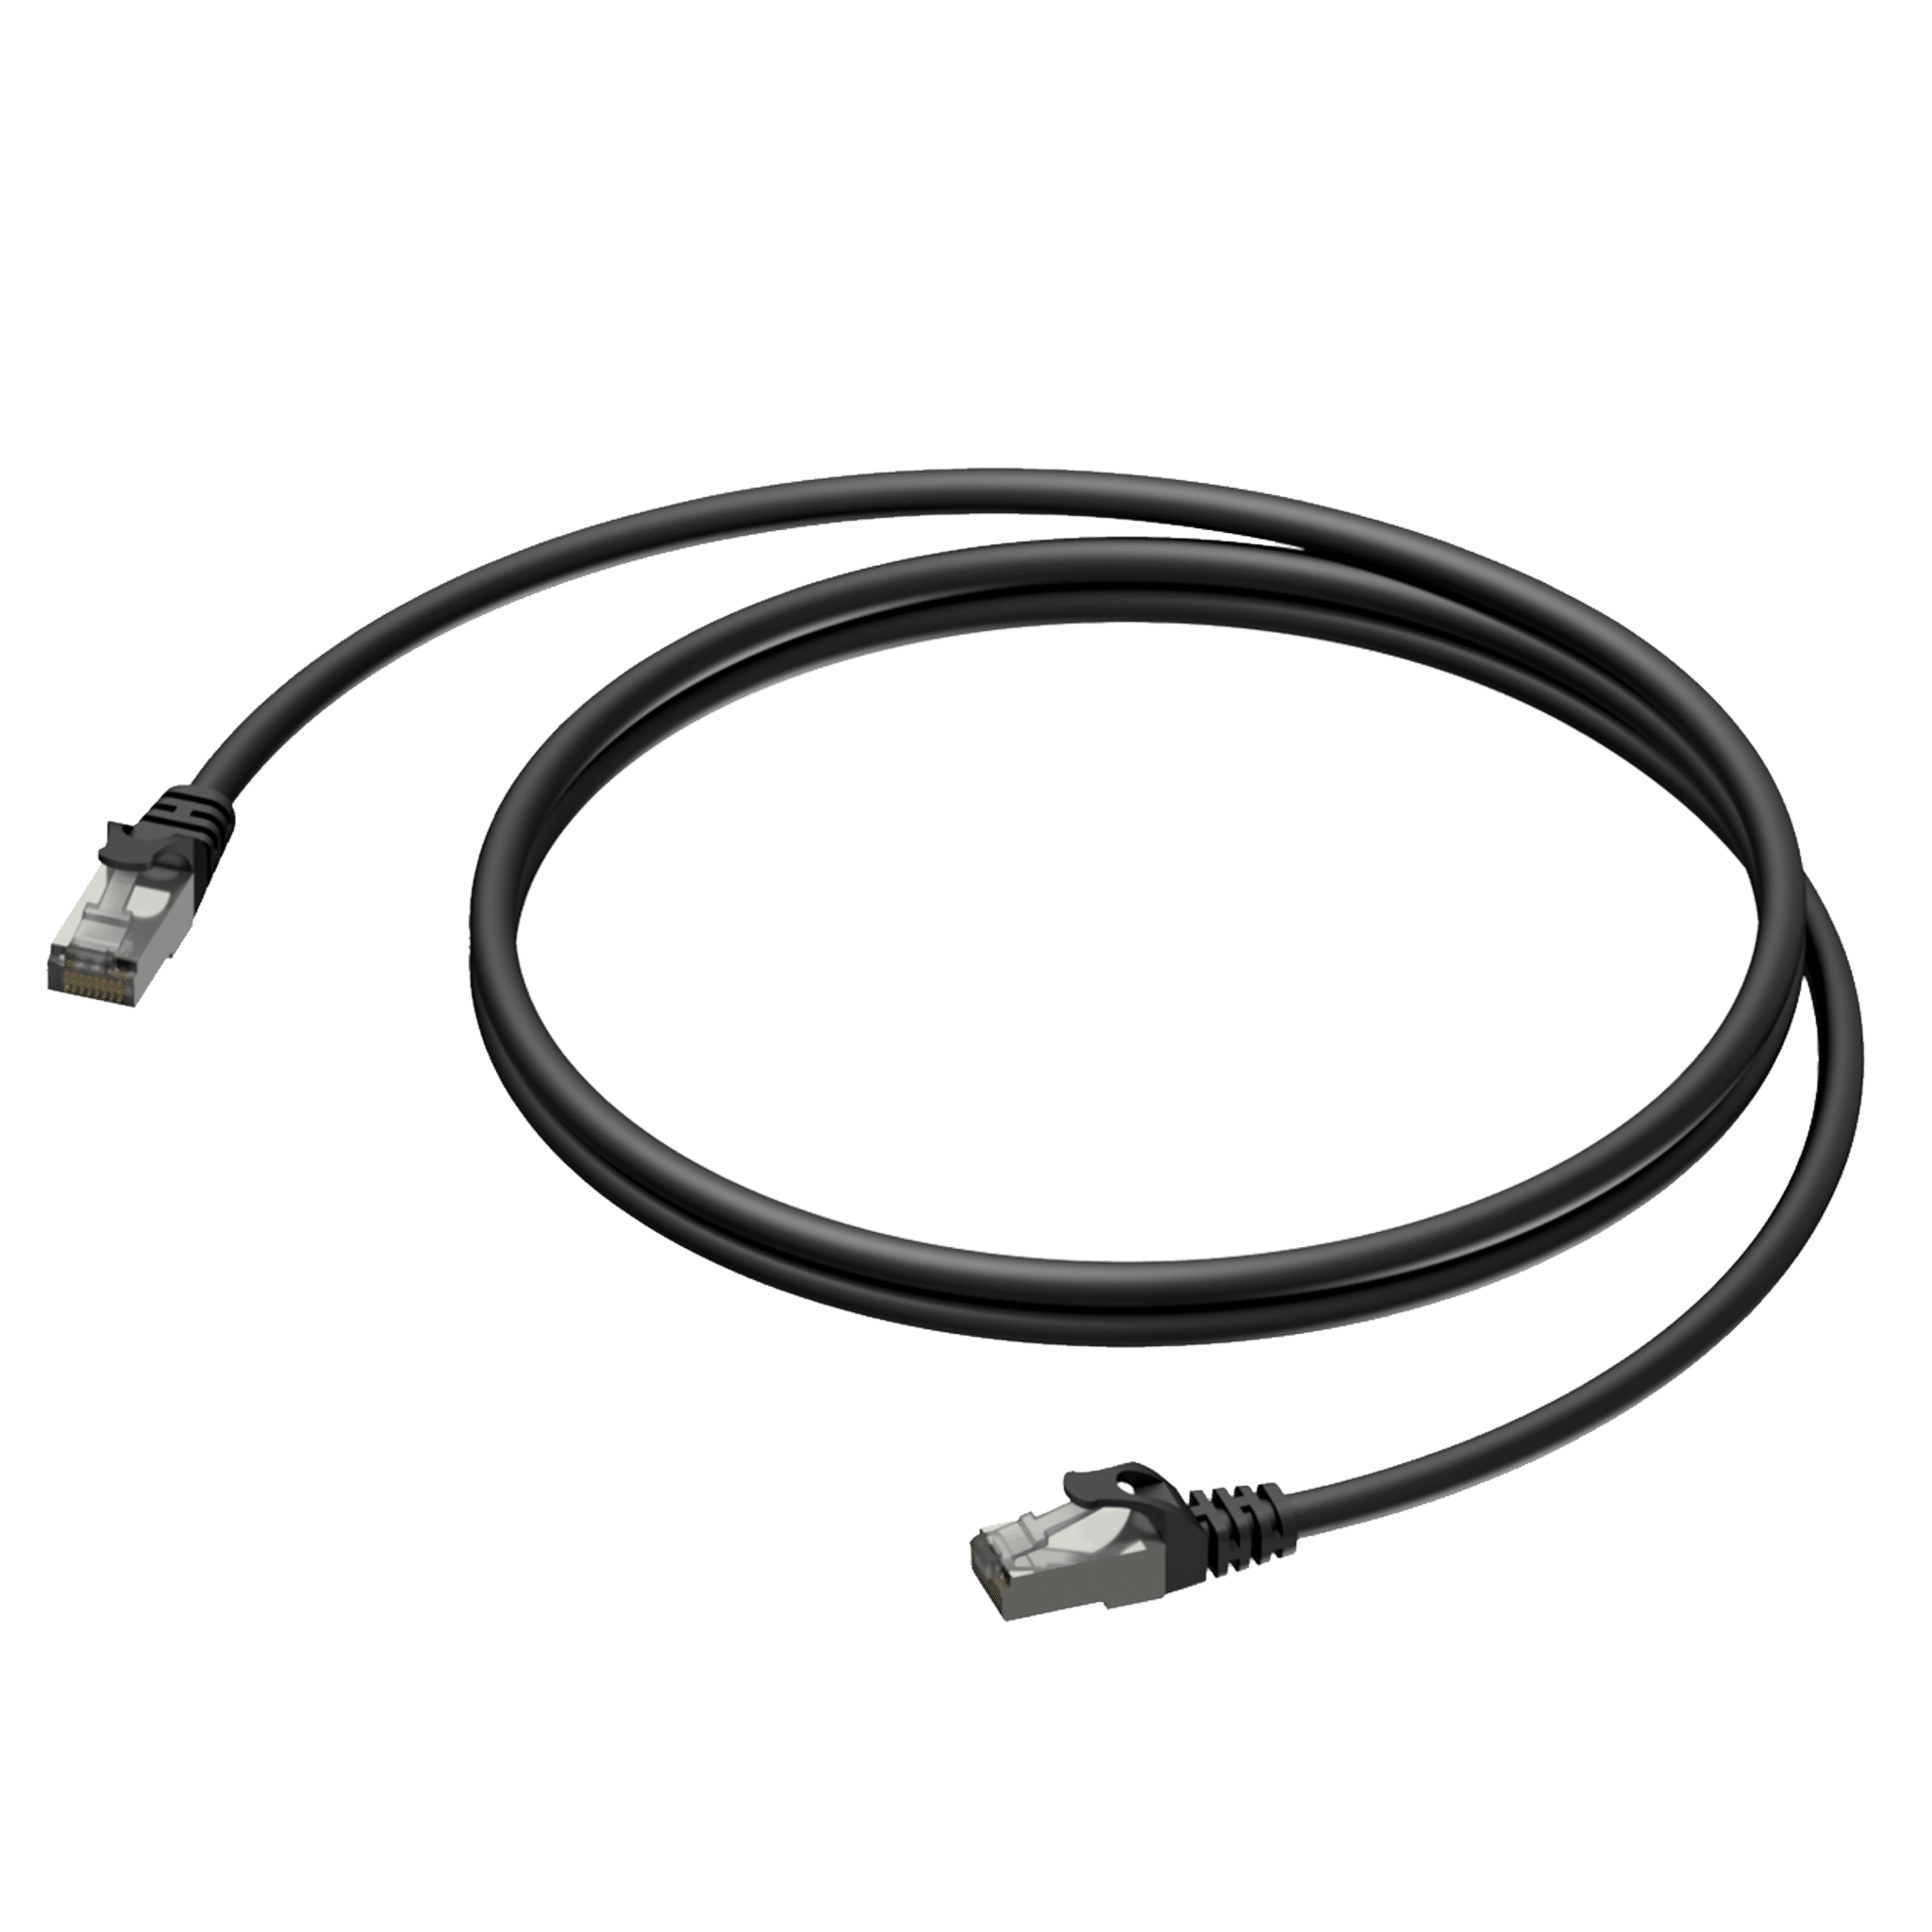 BSD560F - Networking cable - CAT6 - F/UTP - RJ45 - LSHF